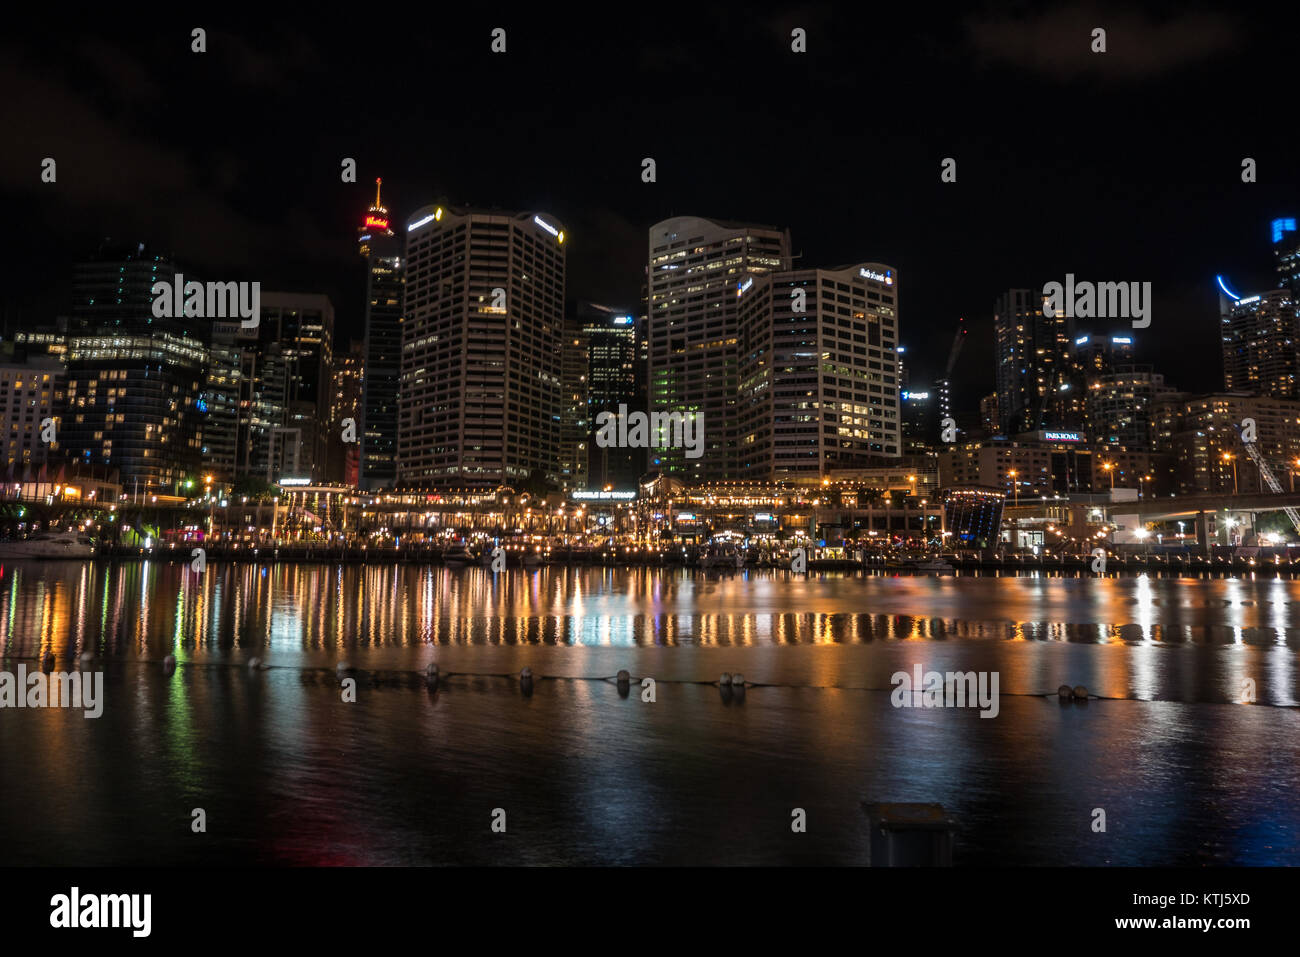 sydney darling harbour at night - Stock Image